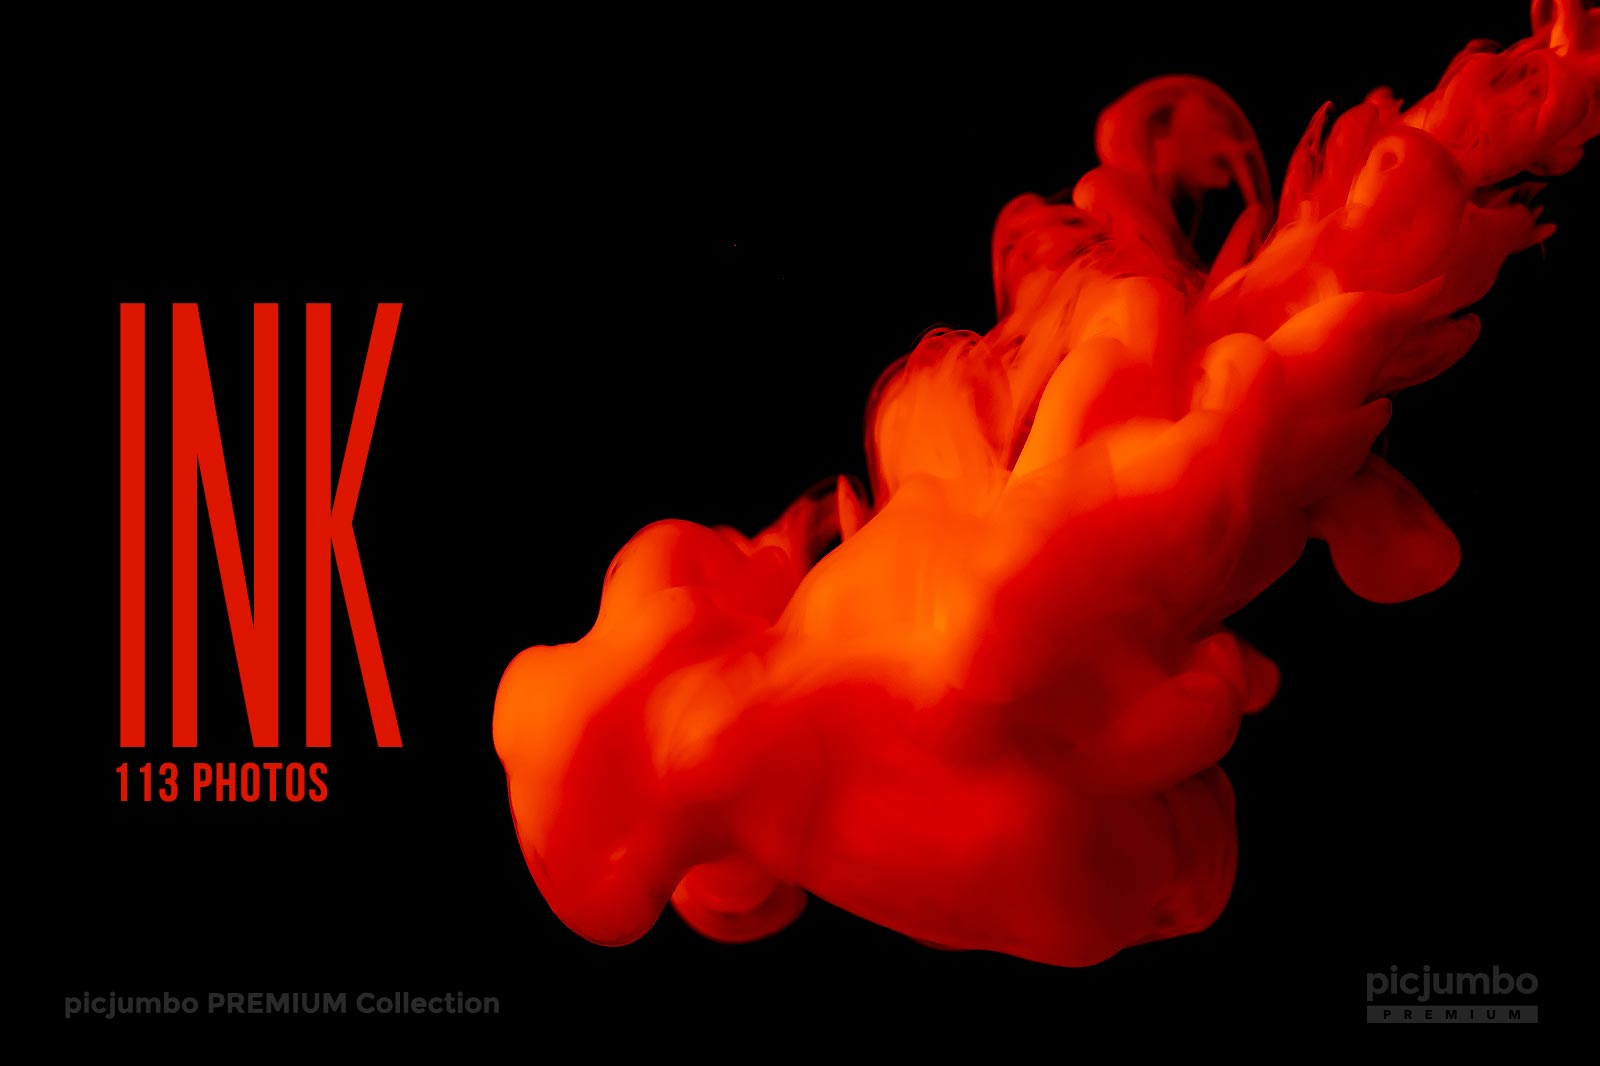 Ink — Join PREMIUM and get instant access to this collection!